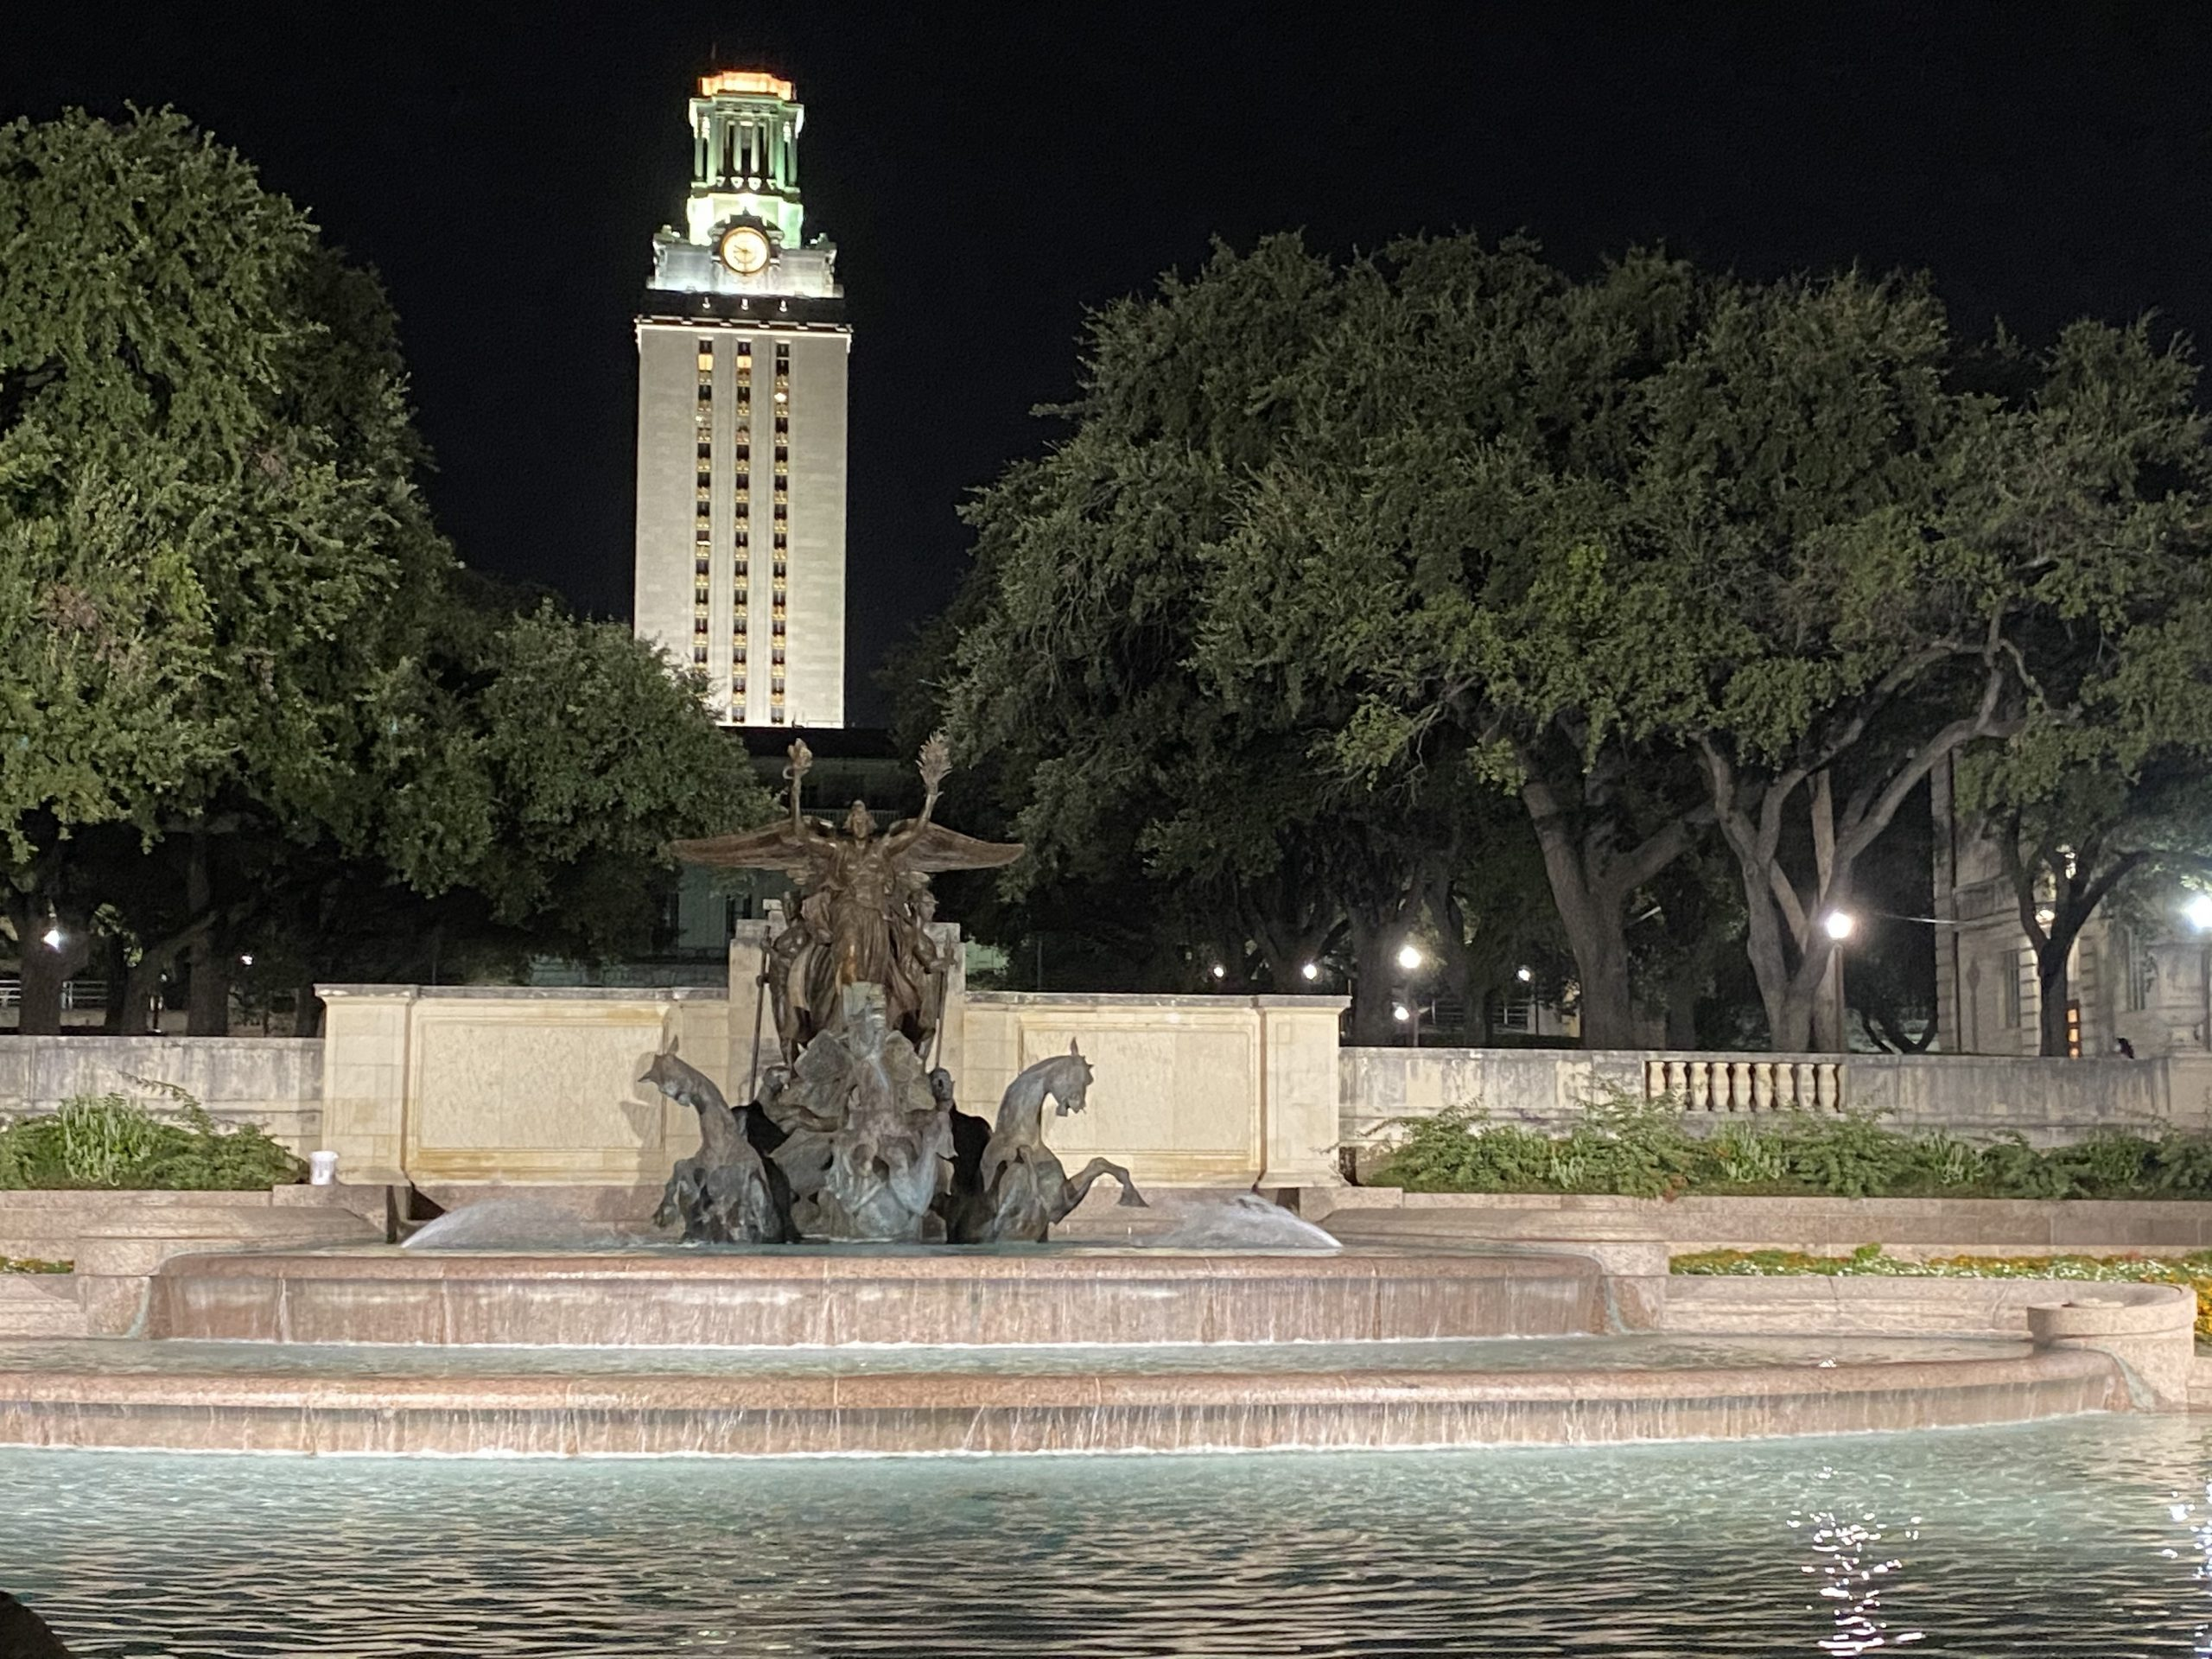 UT Austin at night